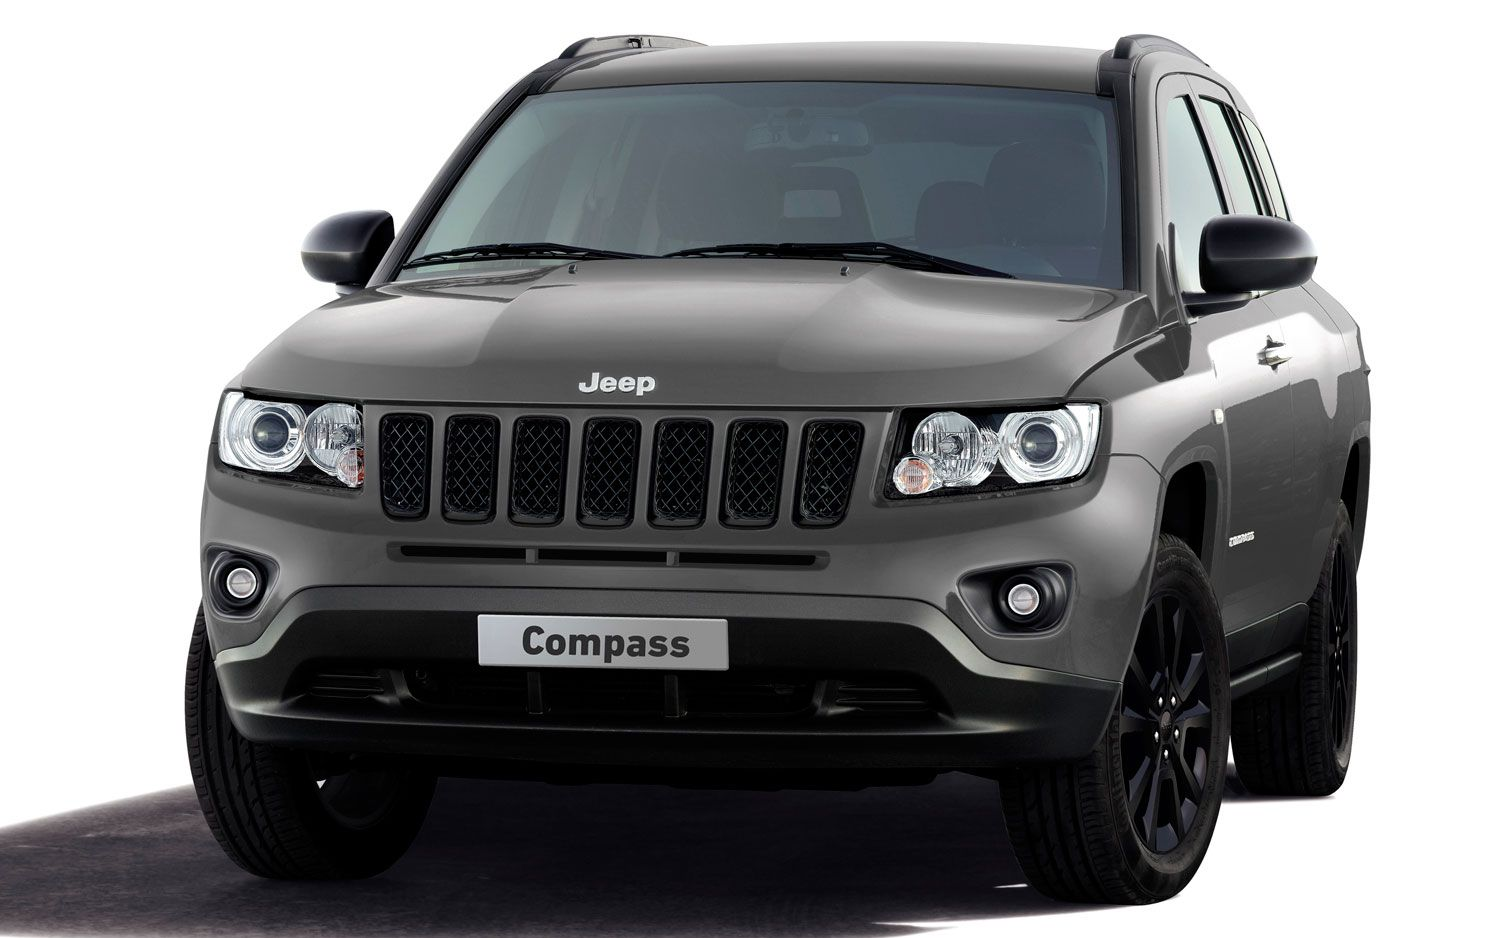 Best 25 jeep compass 2012 ideas only on pinterest jeep compass jeep vehicles and 2011 jeep compass